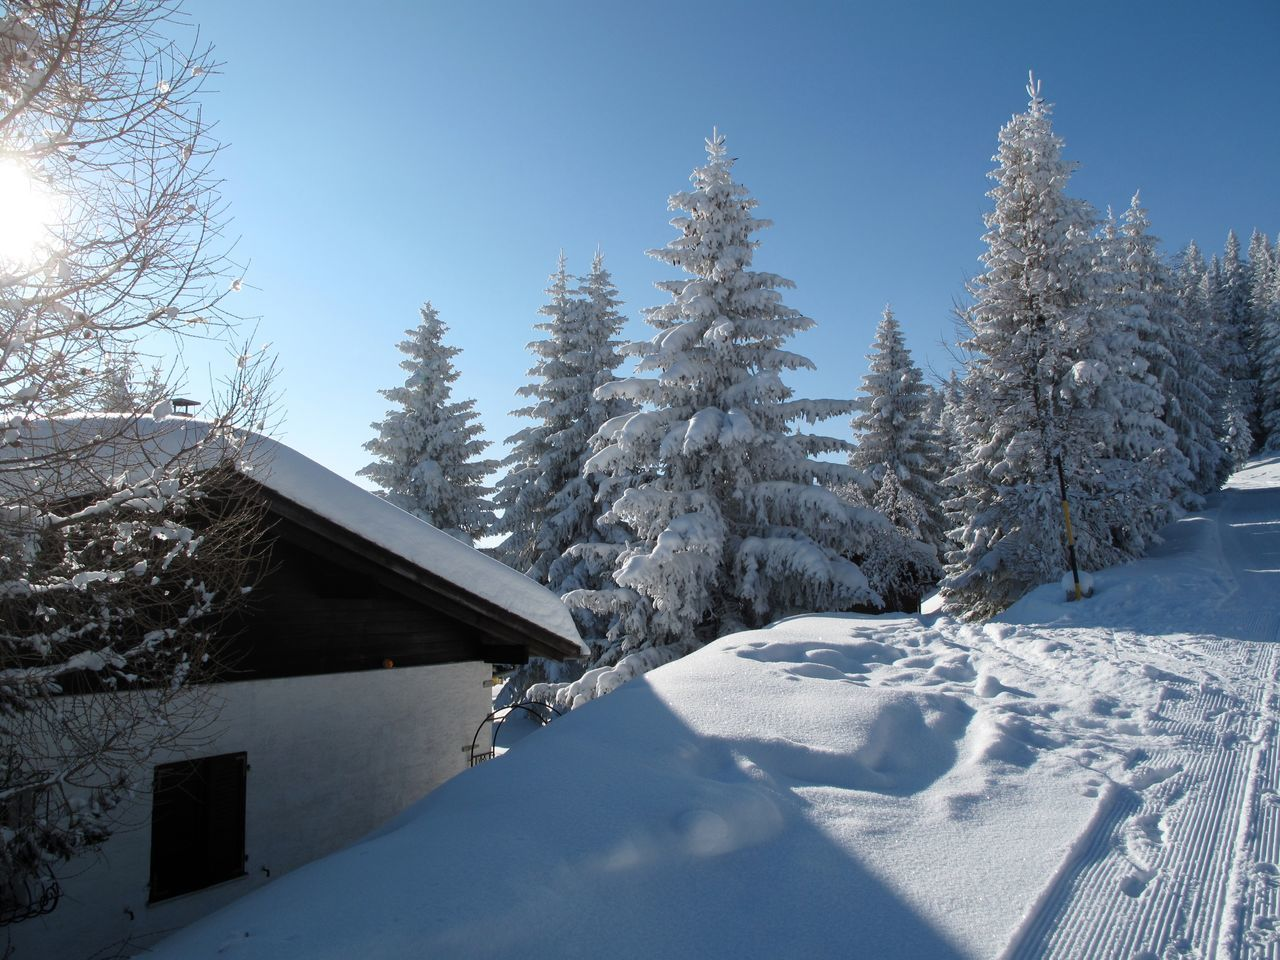 Beauty In Nature Blue Building Exterior Built Structure Chalet Christmas Christmas Tree Cold Temperature Cottage Day Forest House Log Cabin Mountain Nature No People Outdoors Pine Tree Sky Snow Snowing Tree Vacations Winter